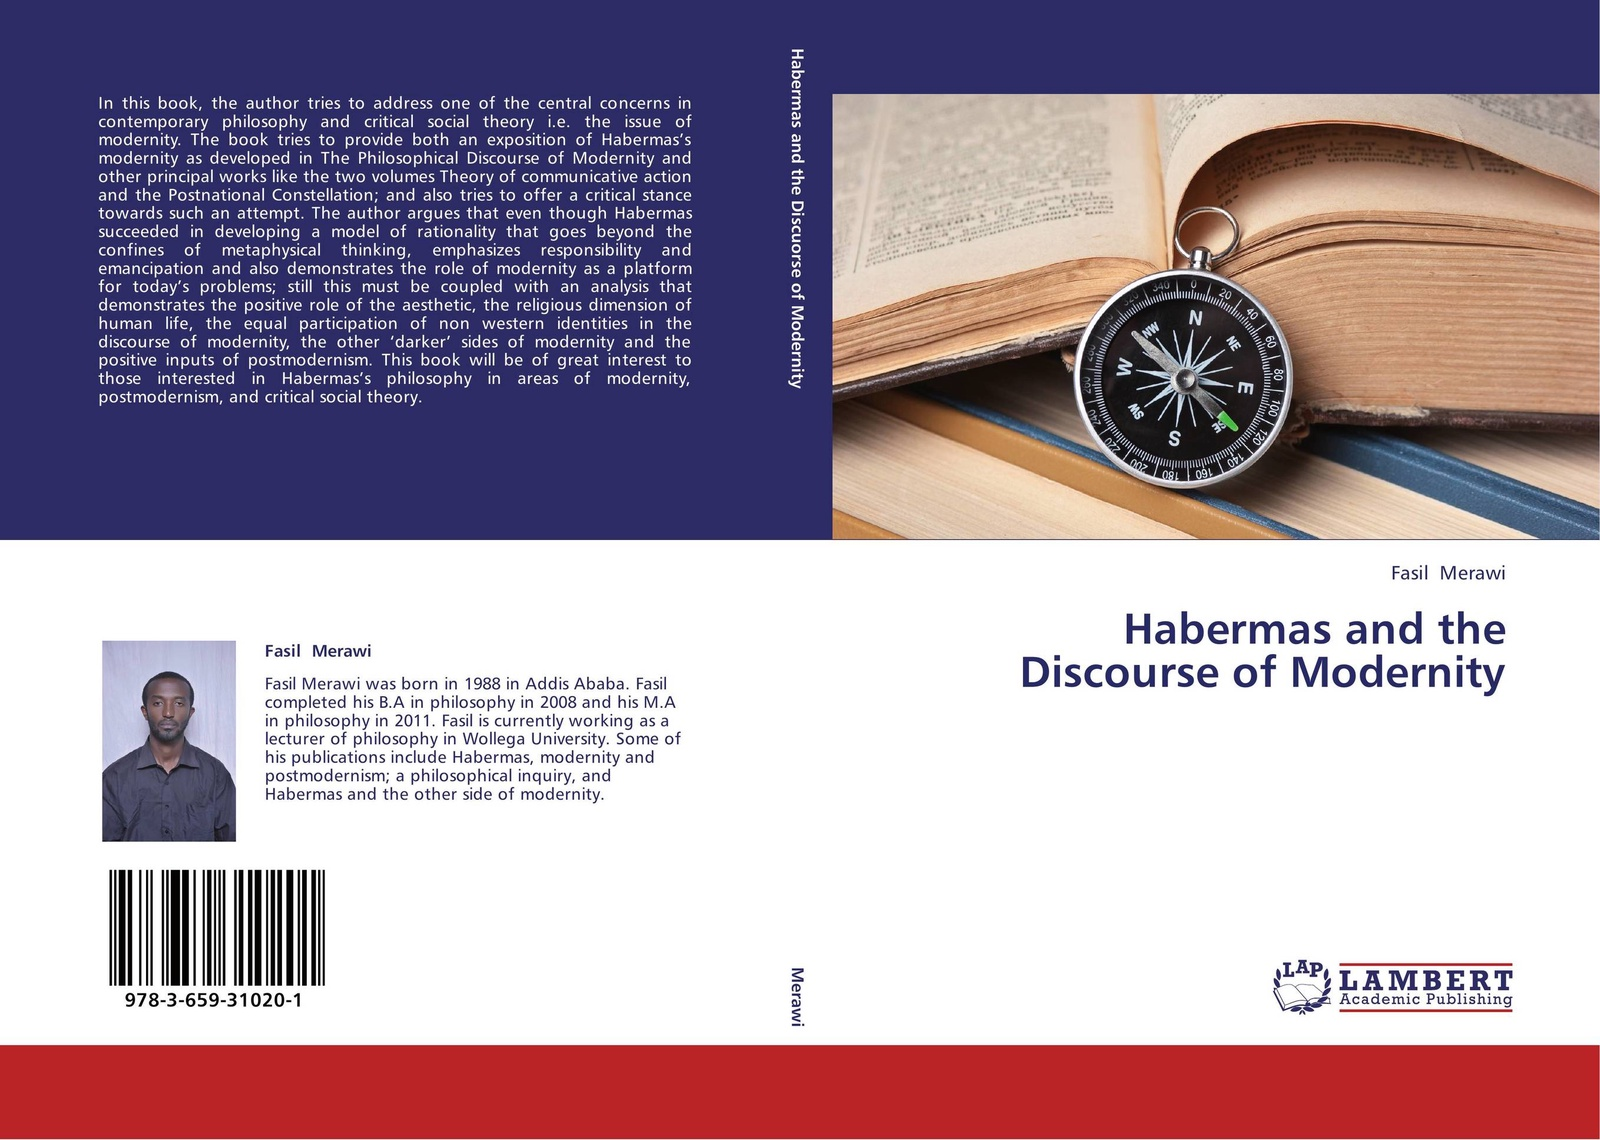 Fasil Merawi Habermas and the Discourse of Modernity capitalism and modernity the great debate